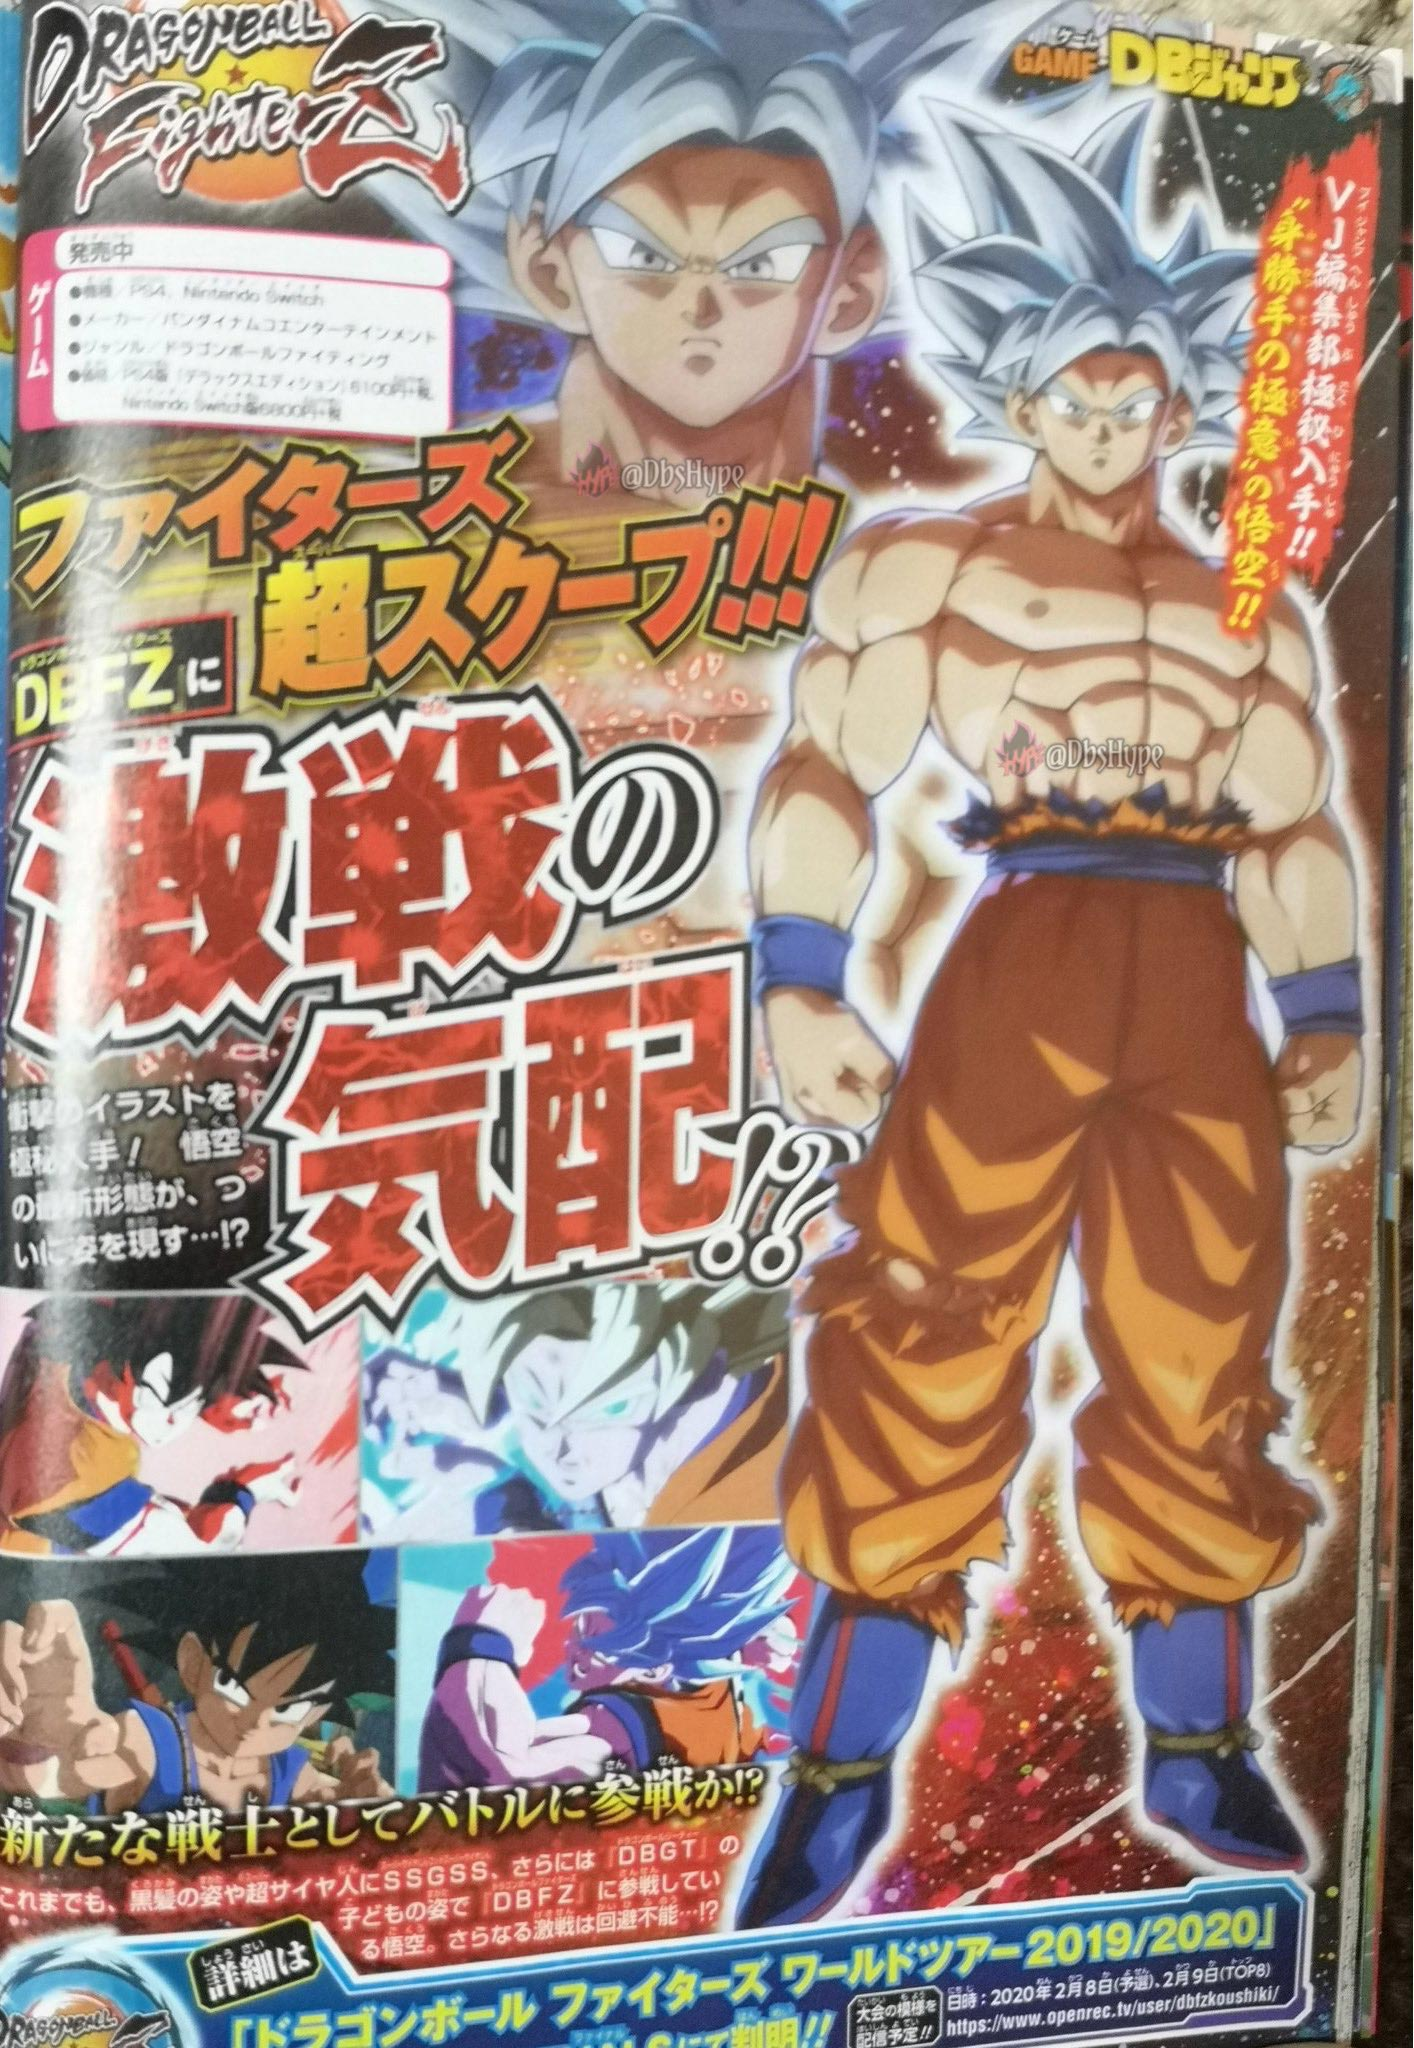 Ultra Instinct Goku scan 1 out of 1 image gallery